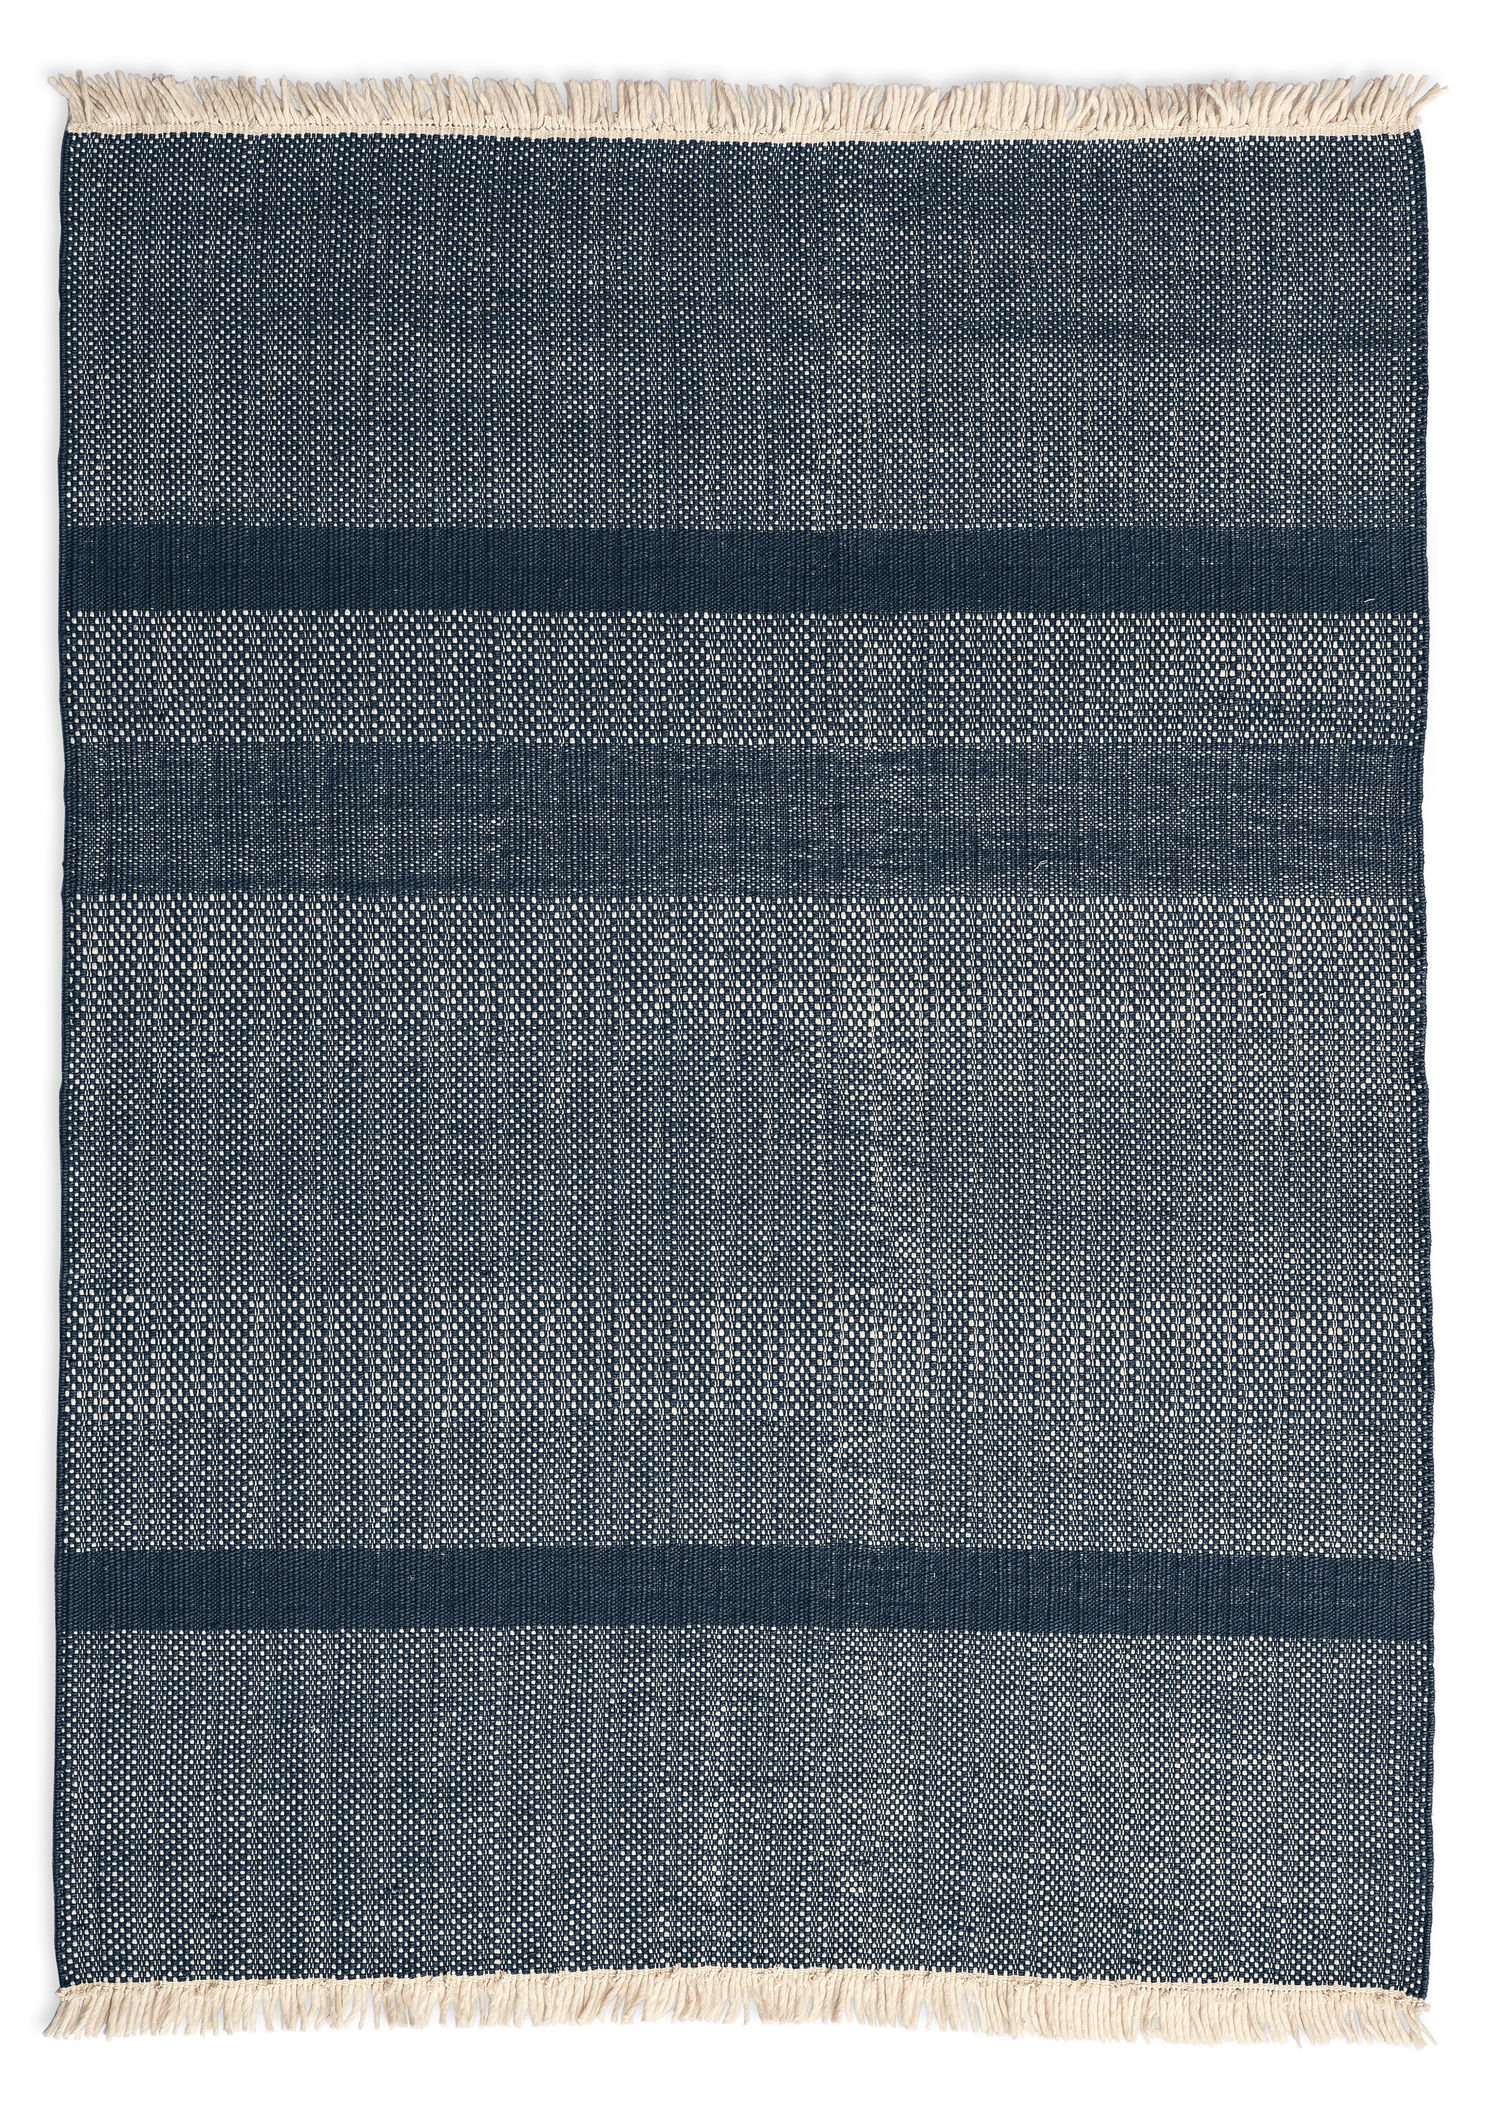 Decoration - Rugs - Tres Texture Rug - 170 x 240 cm by Nanimarquina - Blue - Felt, New-zealand wool